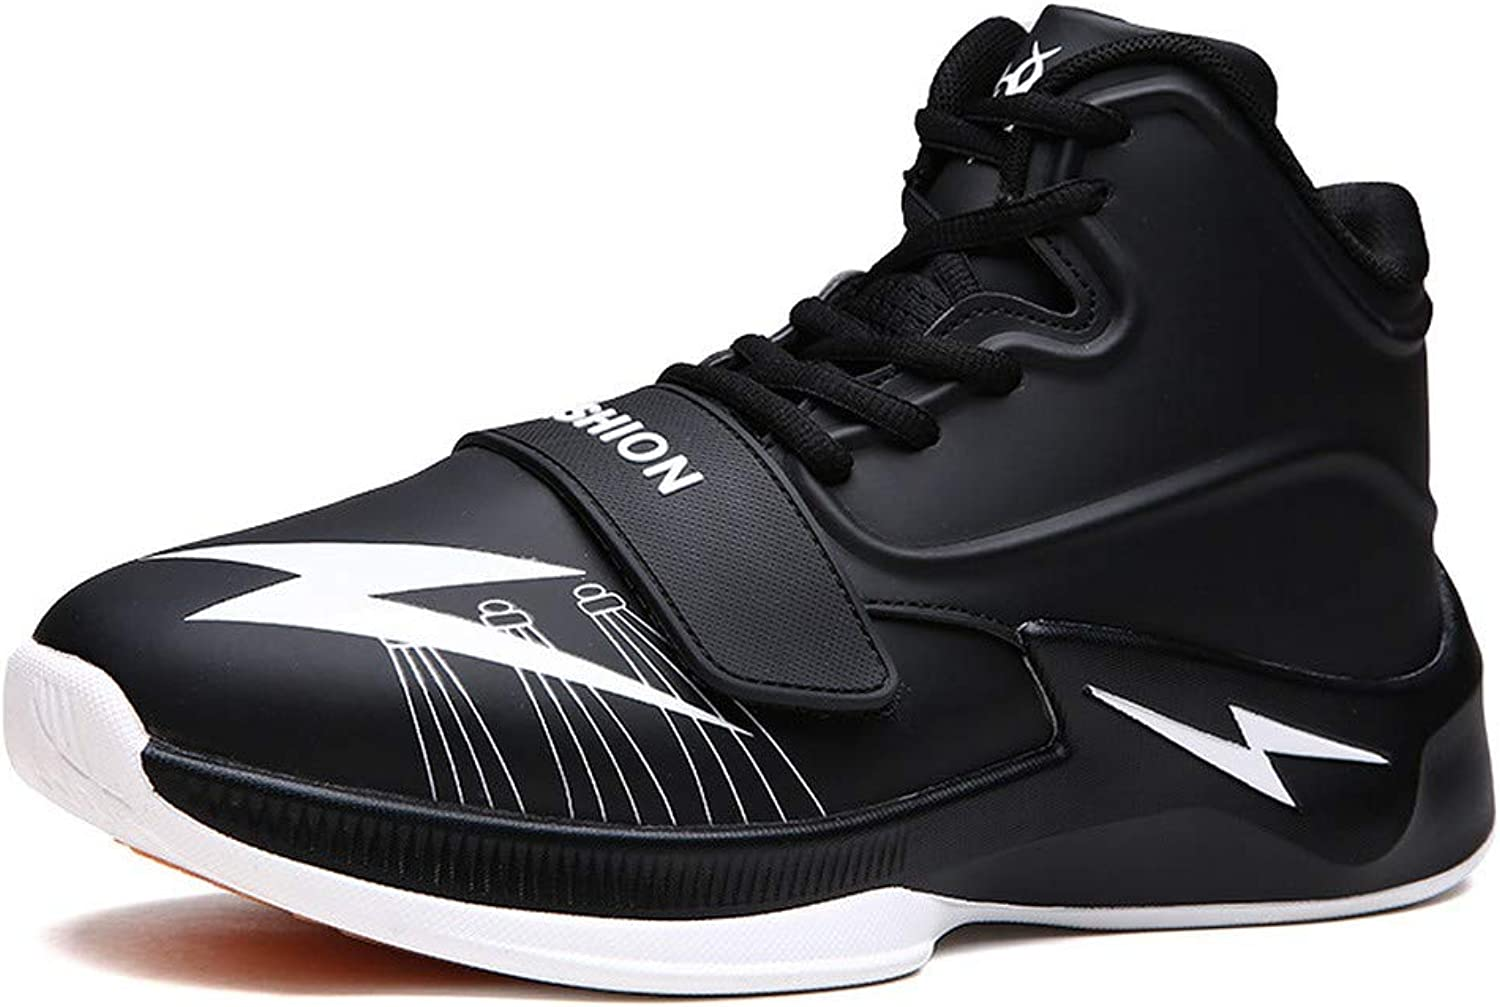 BETIY Men's Basketball shoes Shock Absorption wear Sports shoes Lightning Basketball Game Boots Large Size shoes